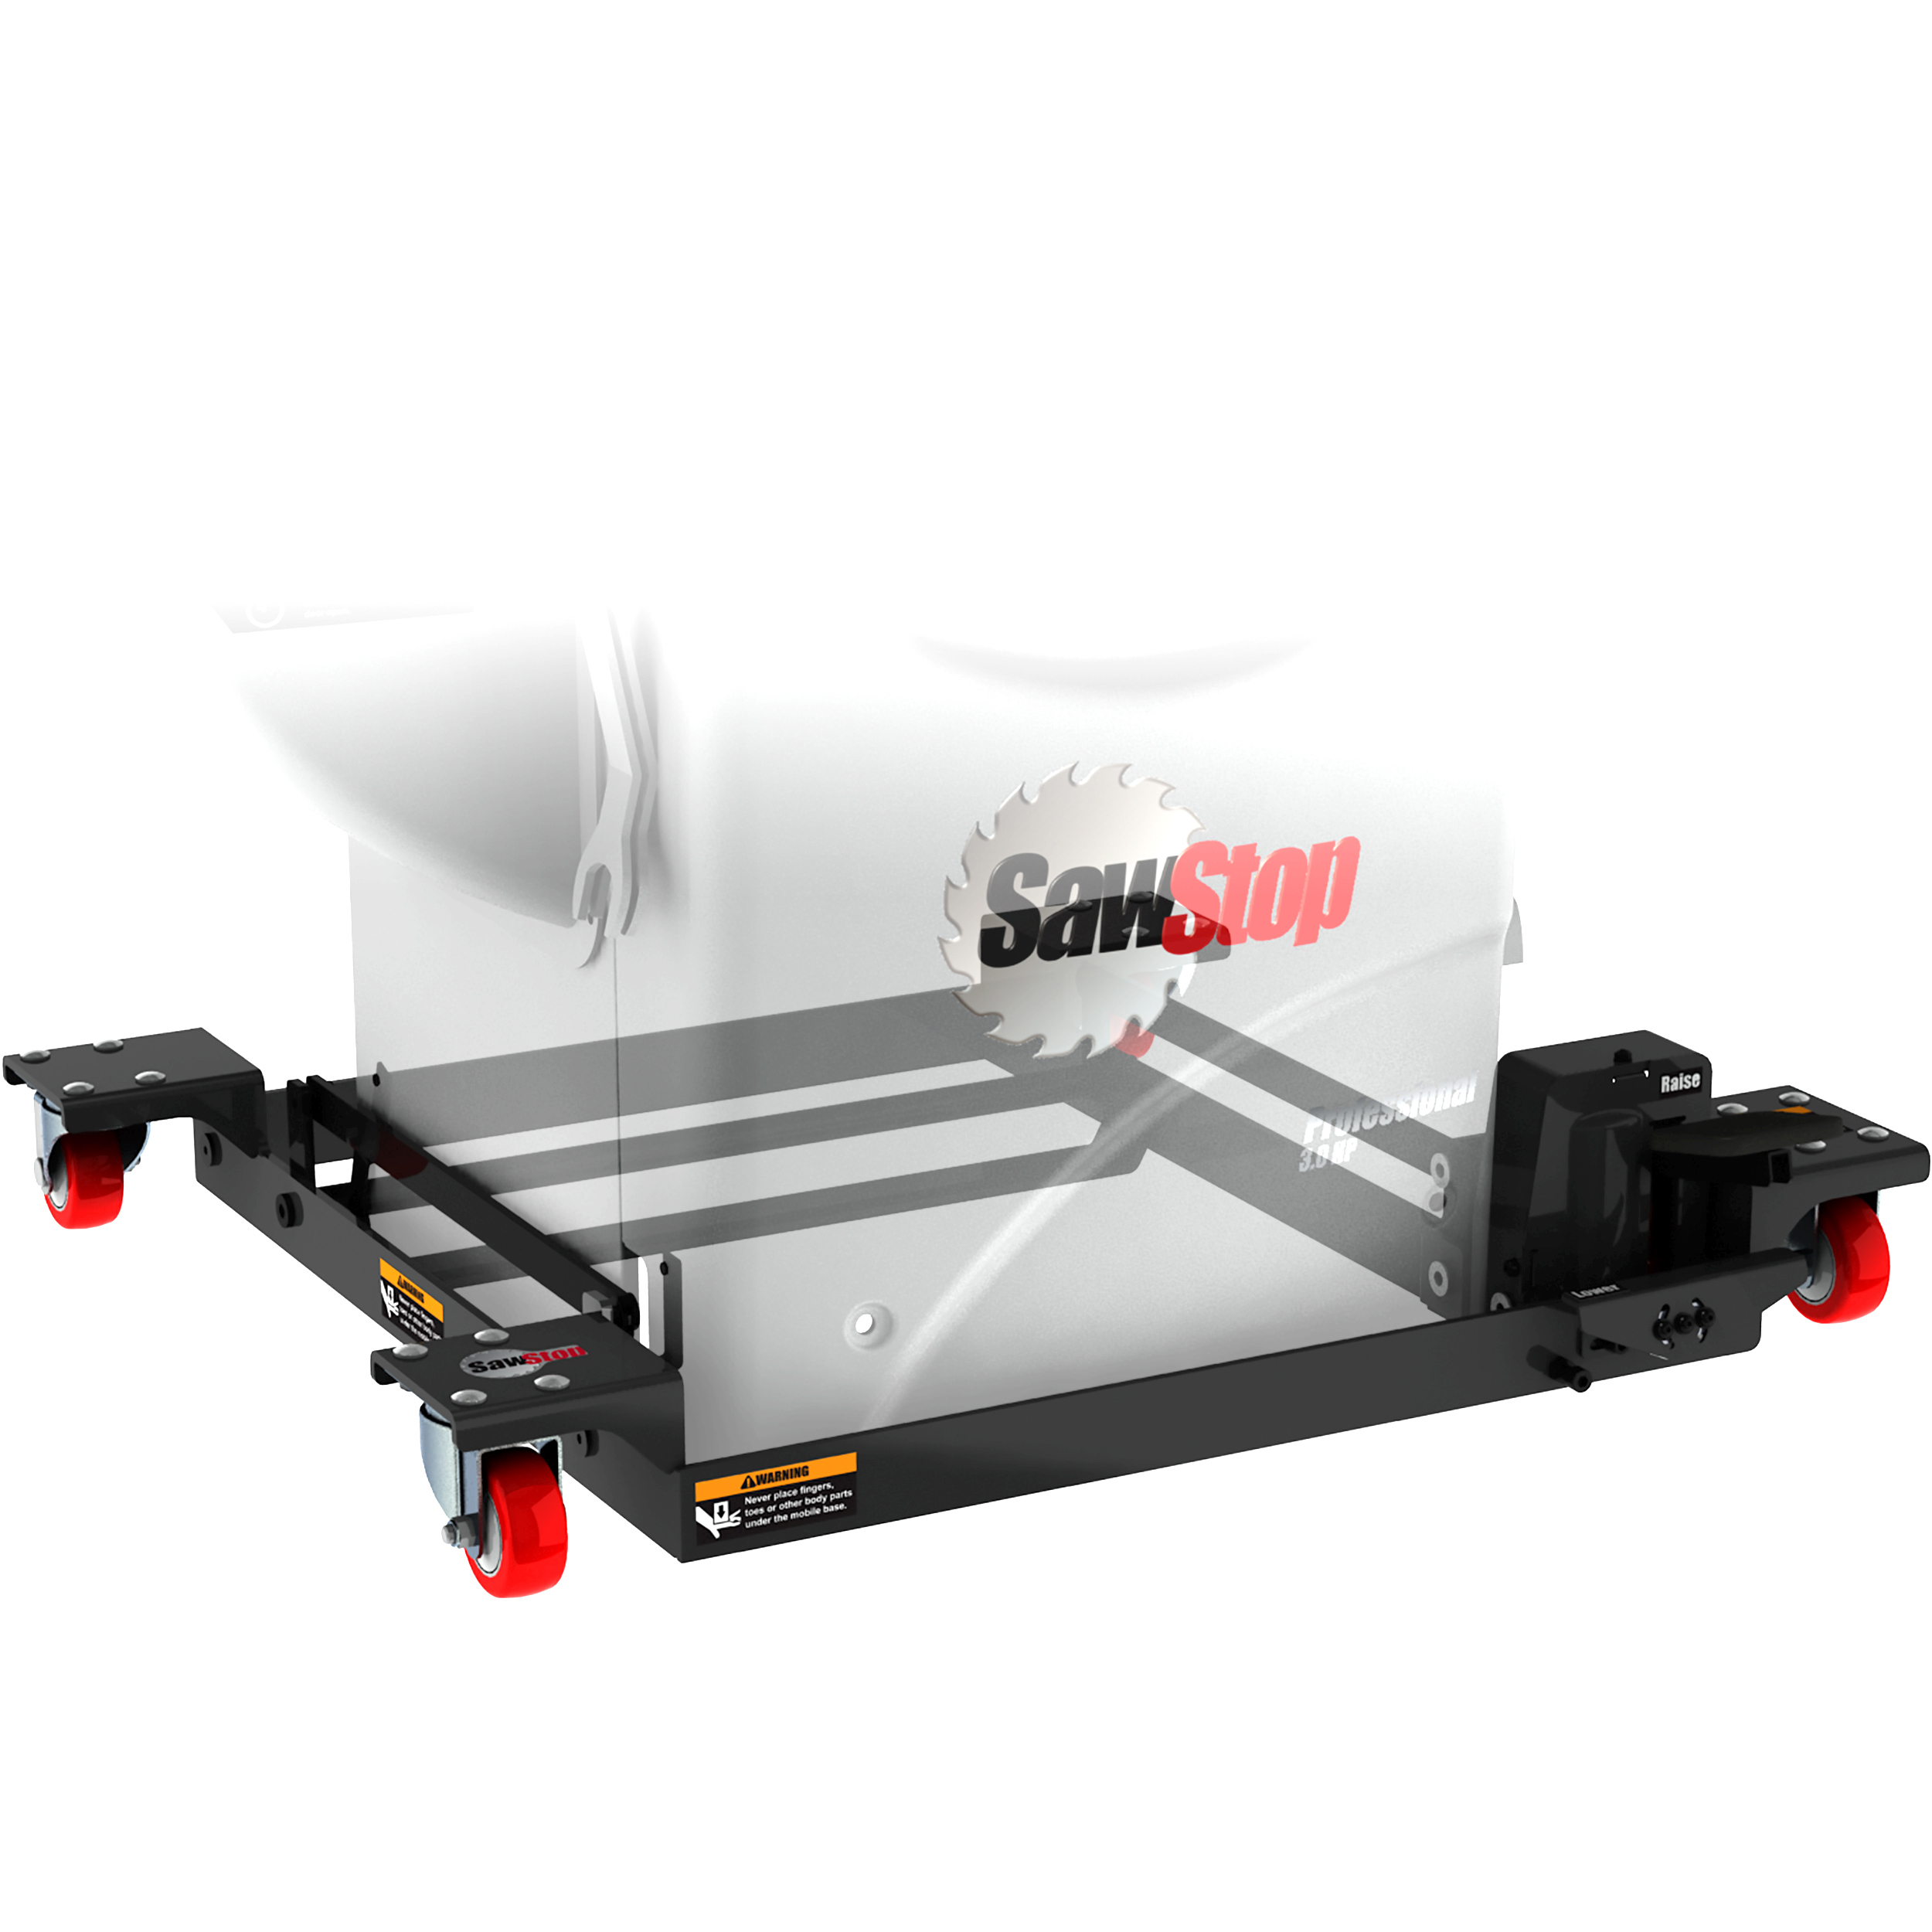 Industrial Cabinet Saw Mobile Base with PCS Conversion Kit